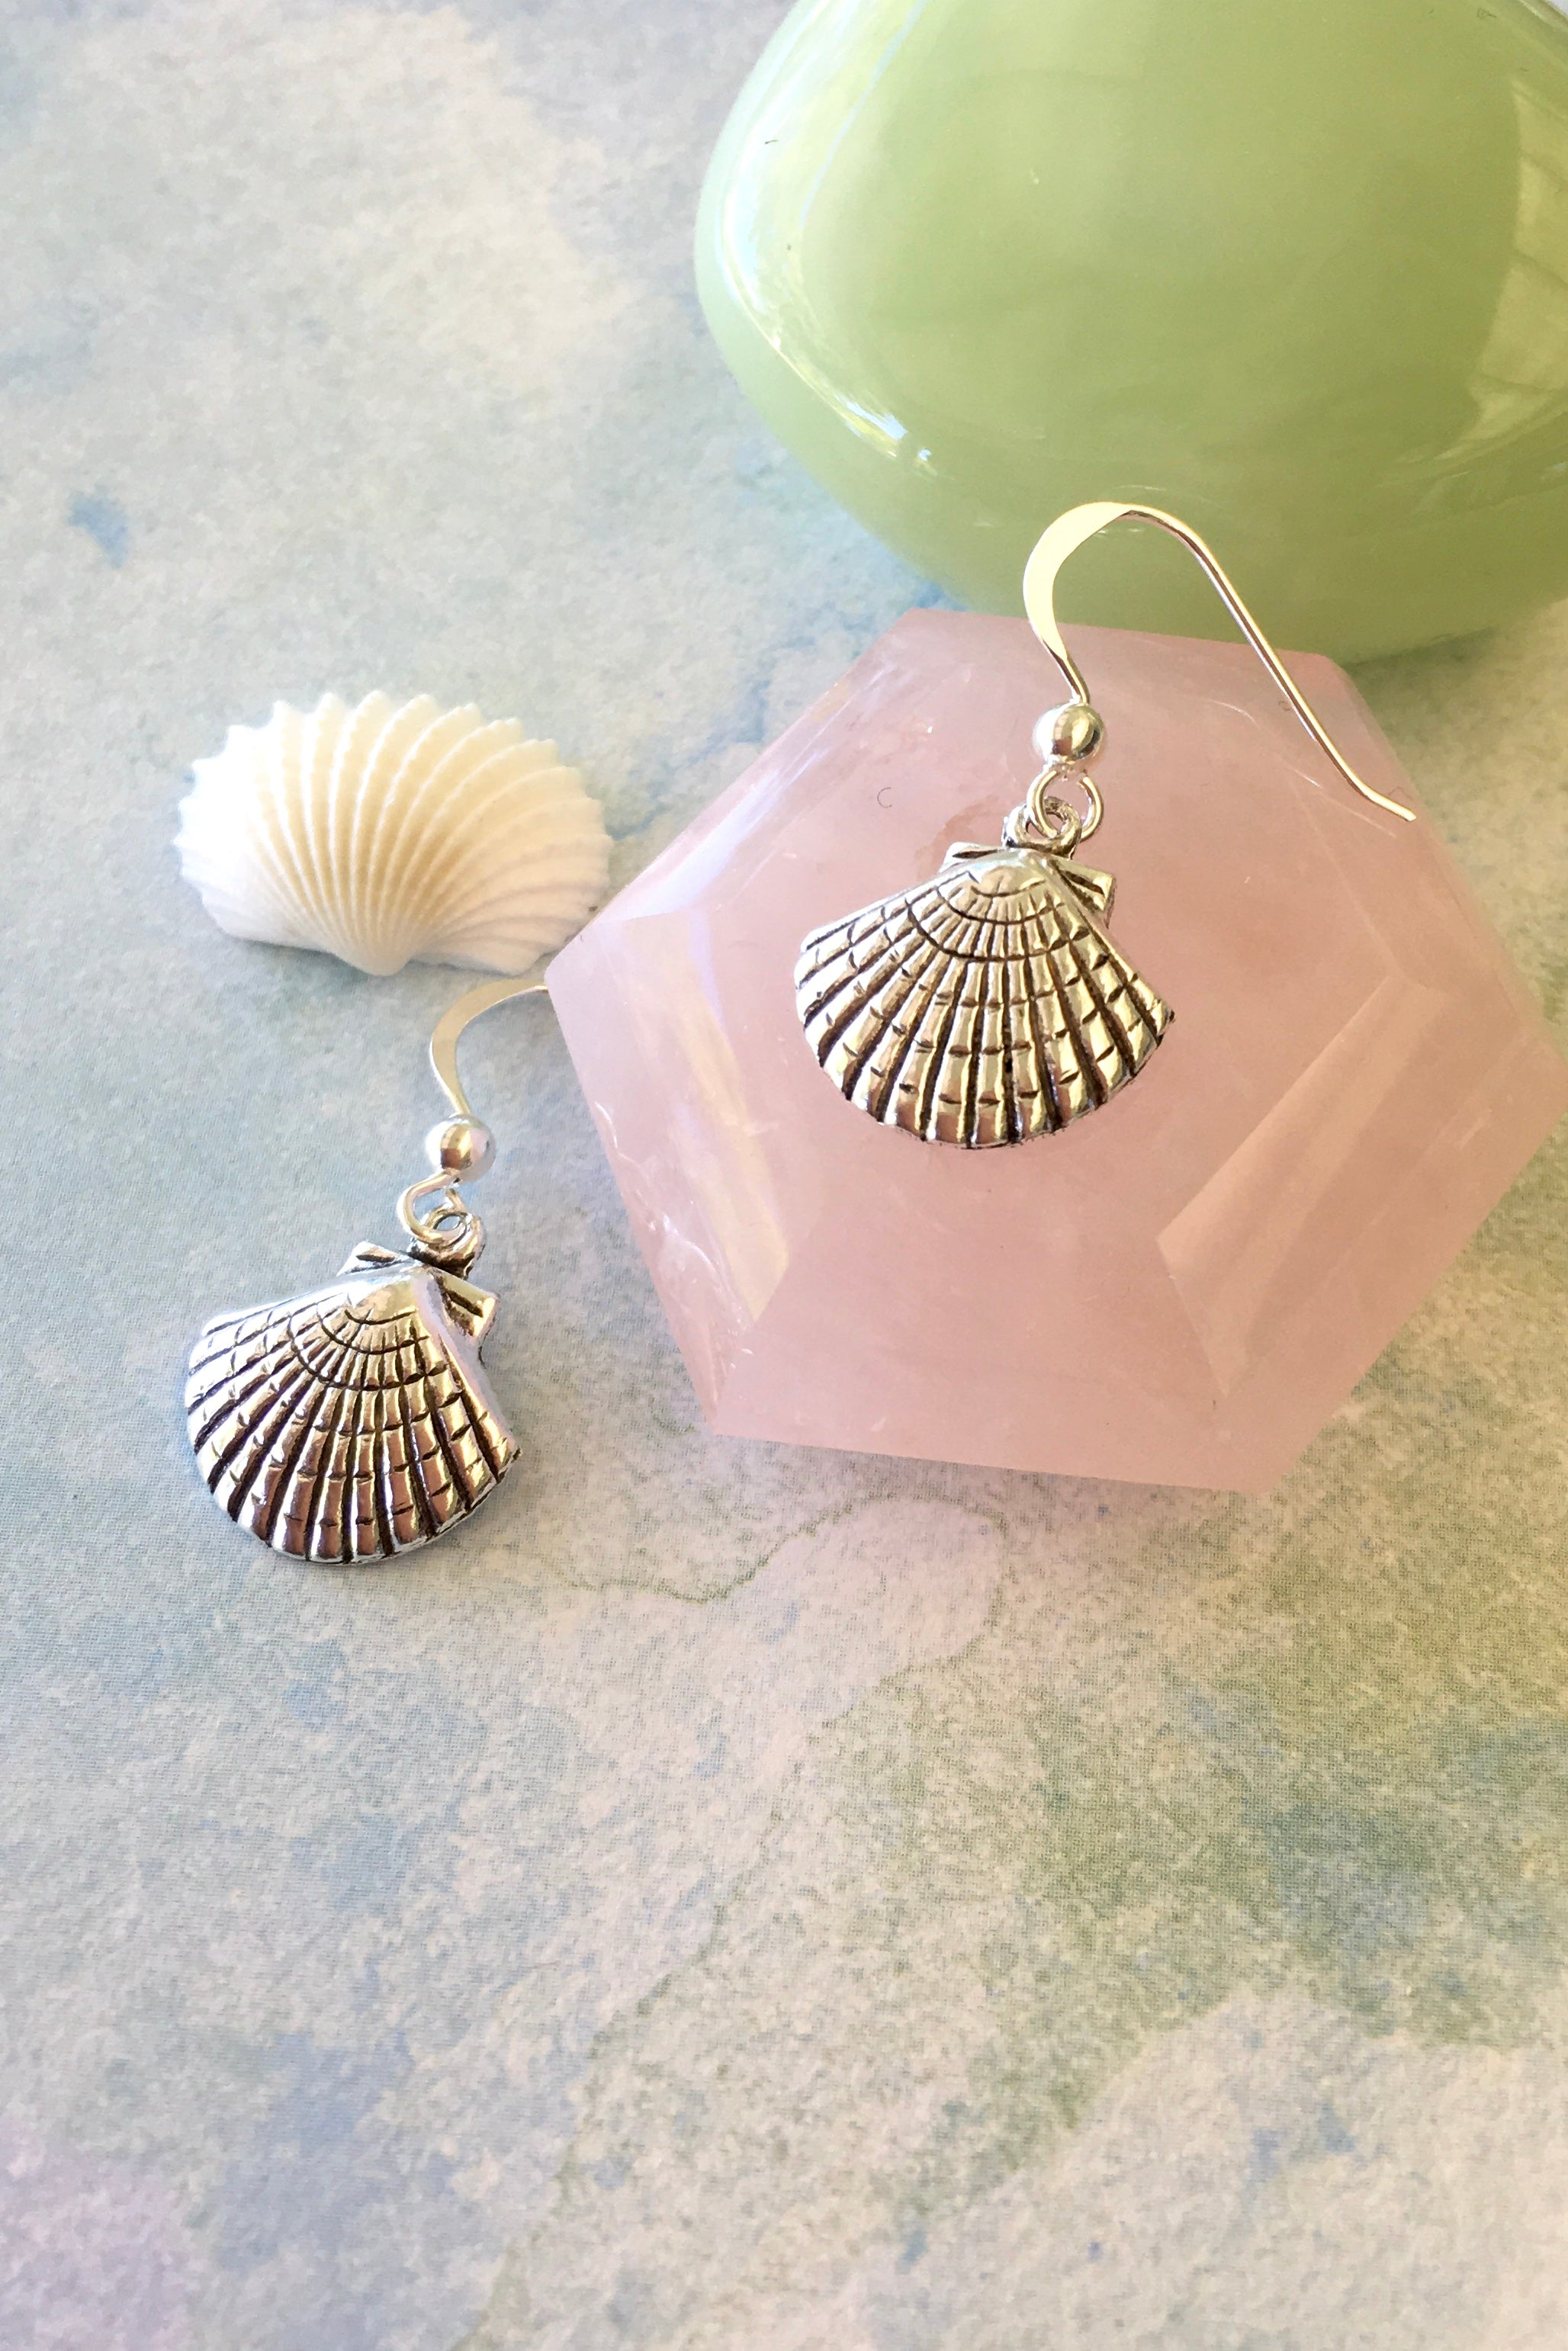 Earrings Cay Shells Hoop in 925 Silver, sea shells style earrings in silver for beach wear